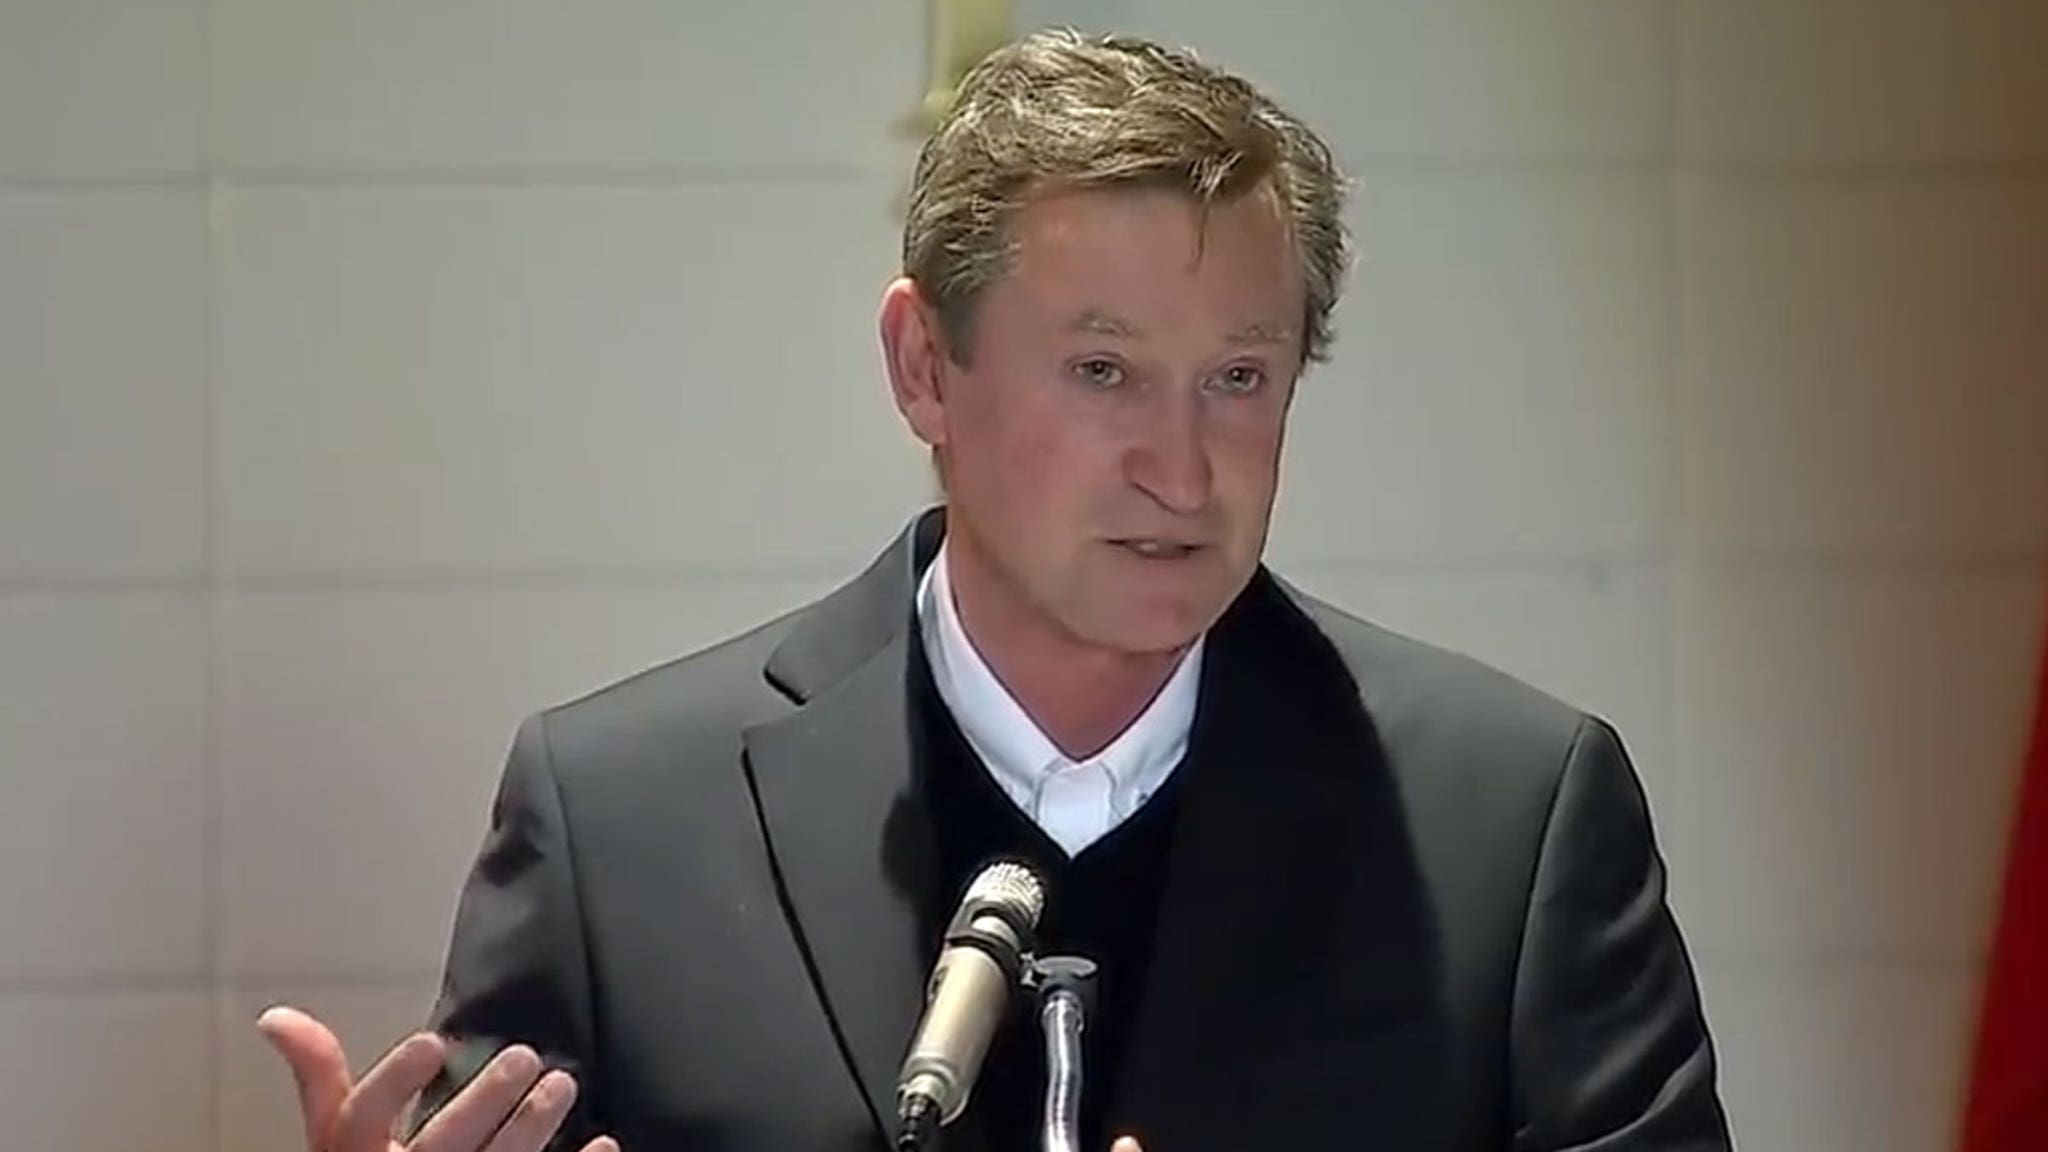 Wayne Gretzky Chokes Up at His Father's Funeral ... Delivers Emotional Eulogy